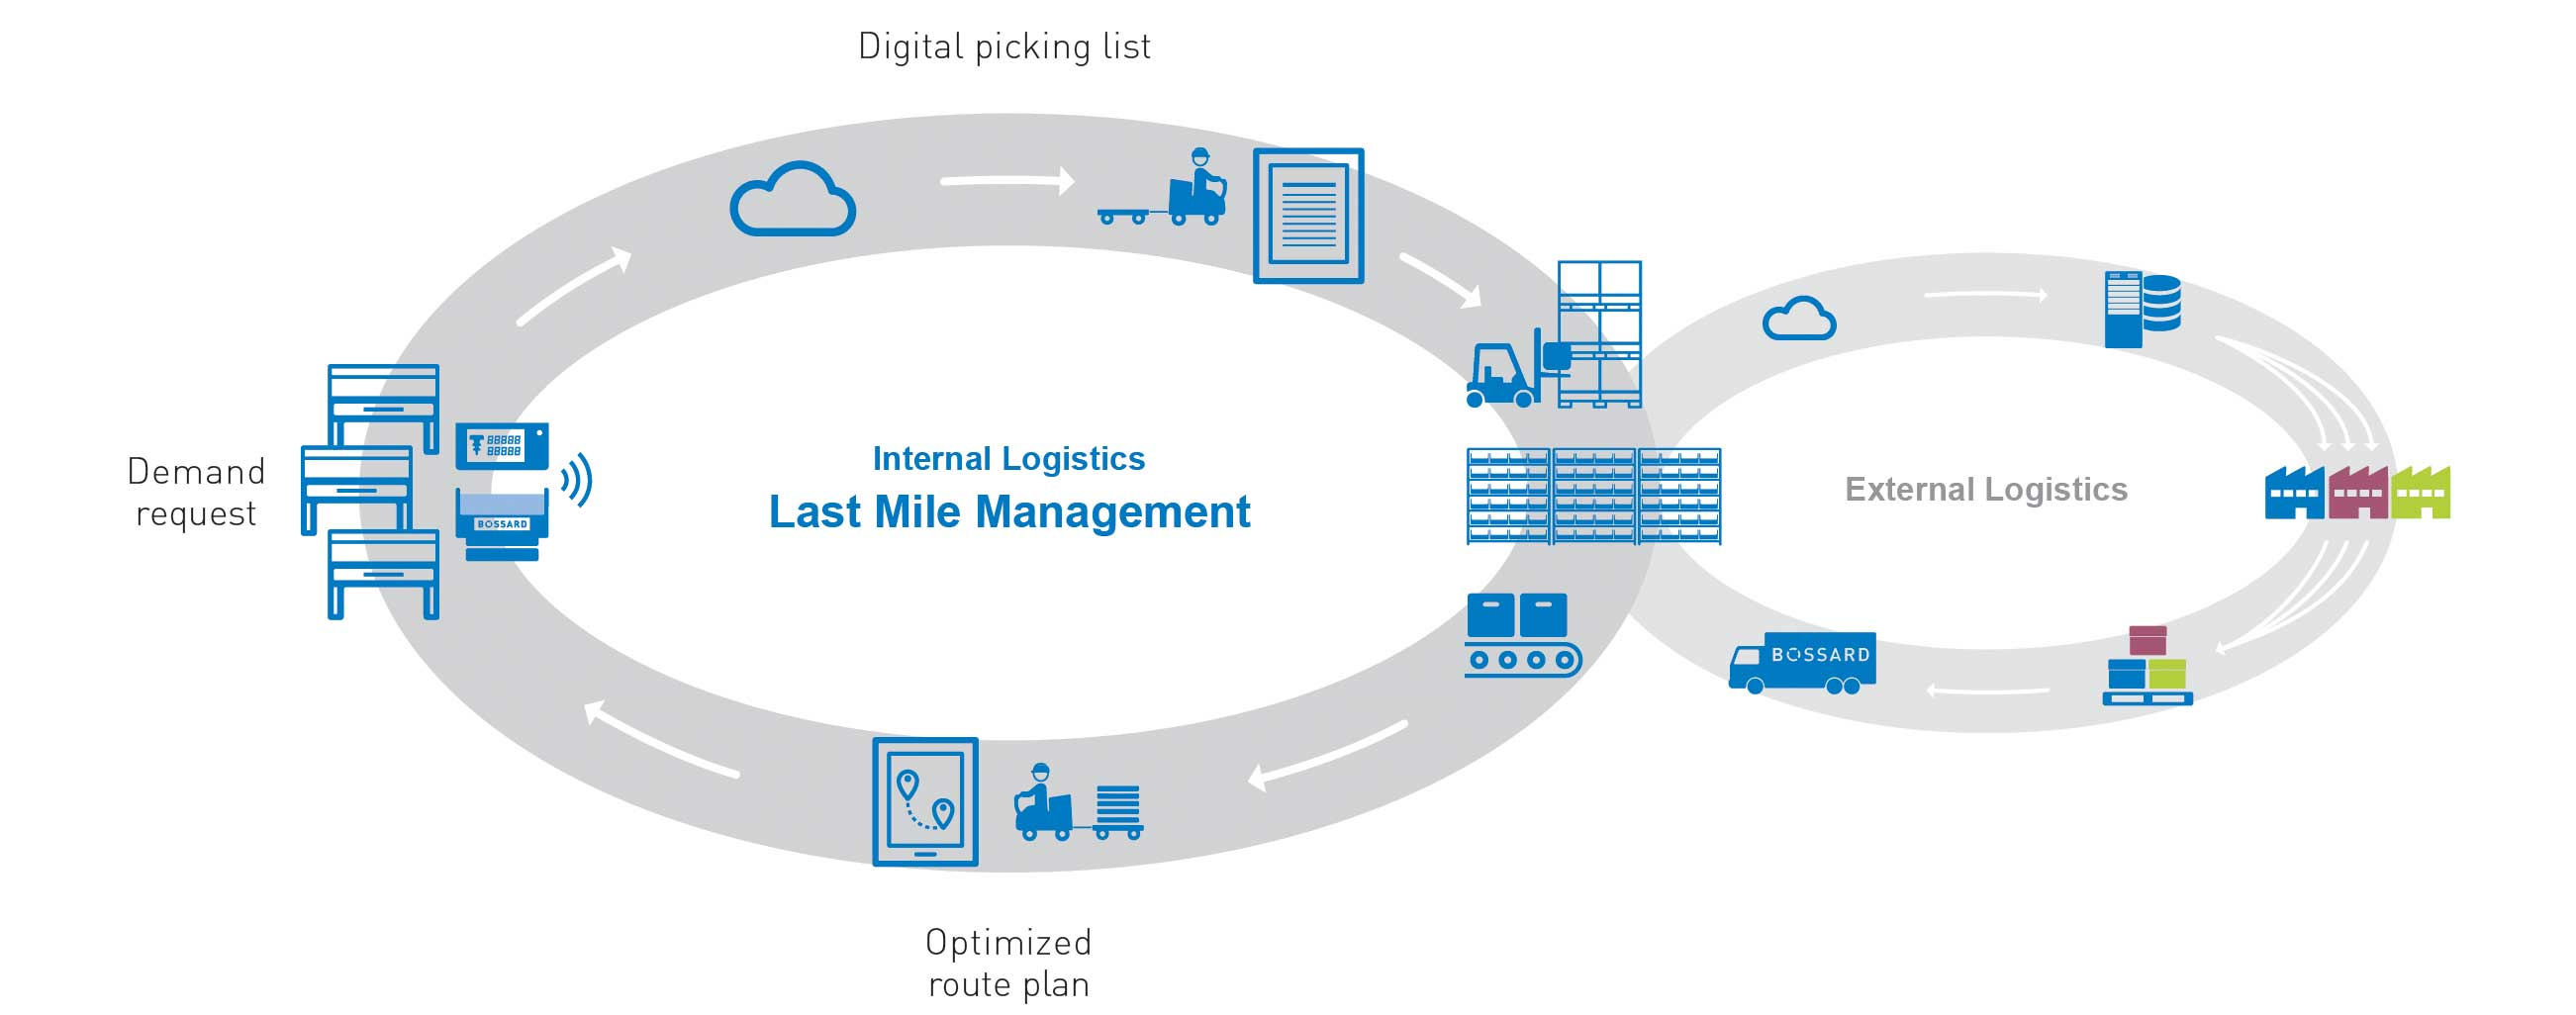 Internal Logistics – Last Miile Management